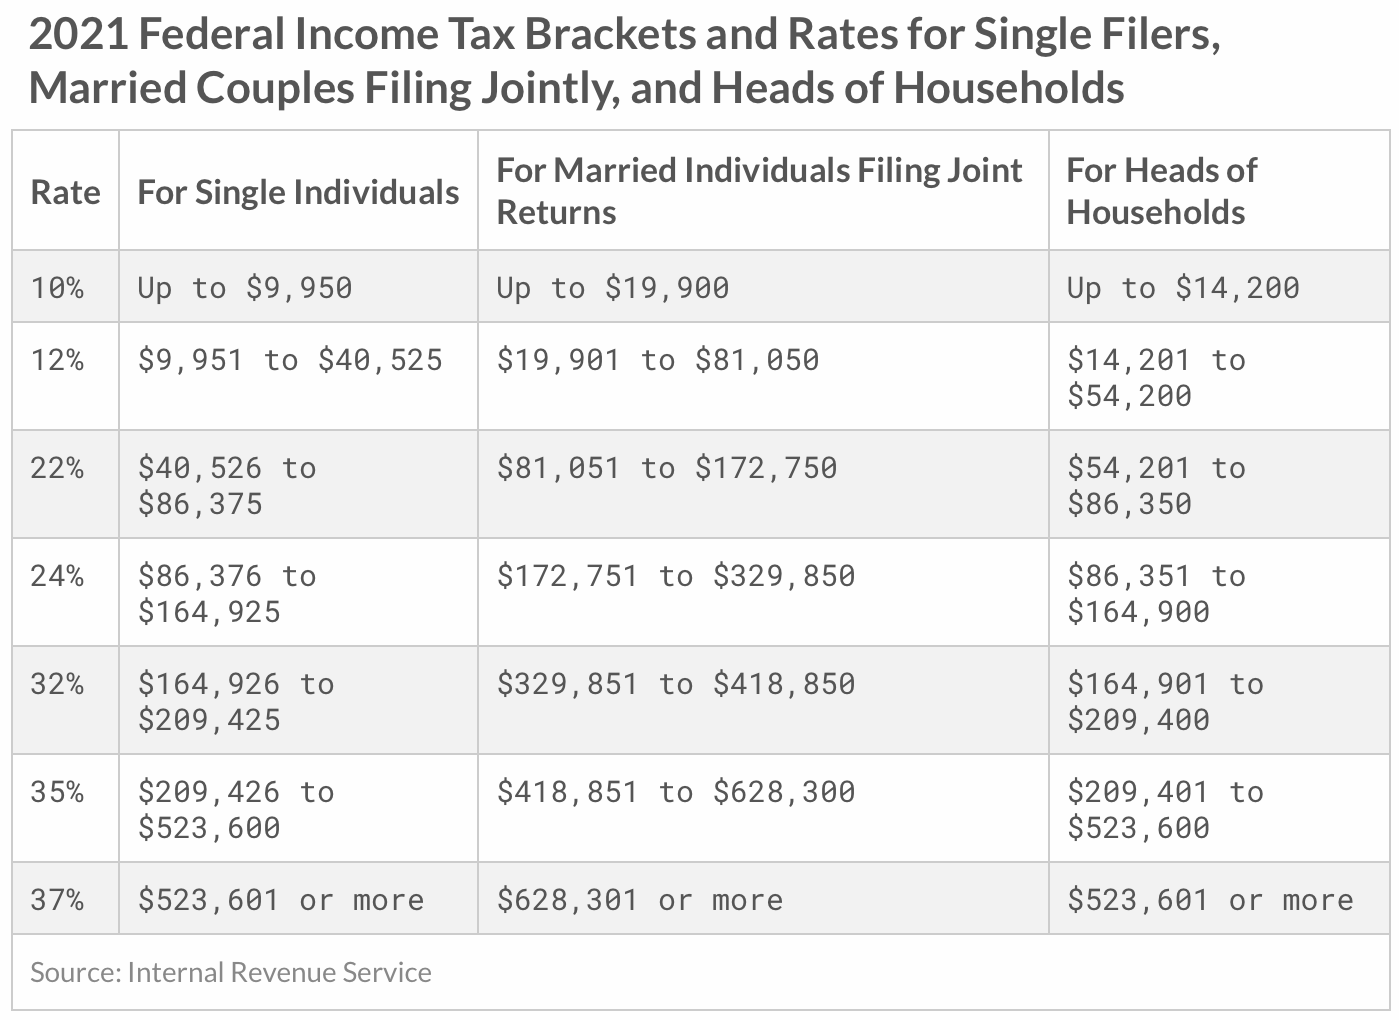 Federal Marginal Income Tax Brackets Rates 2021